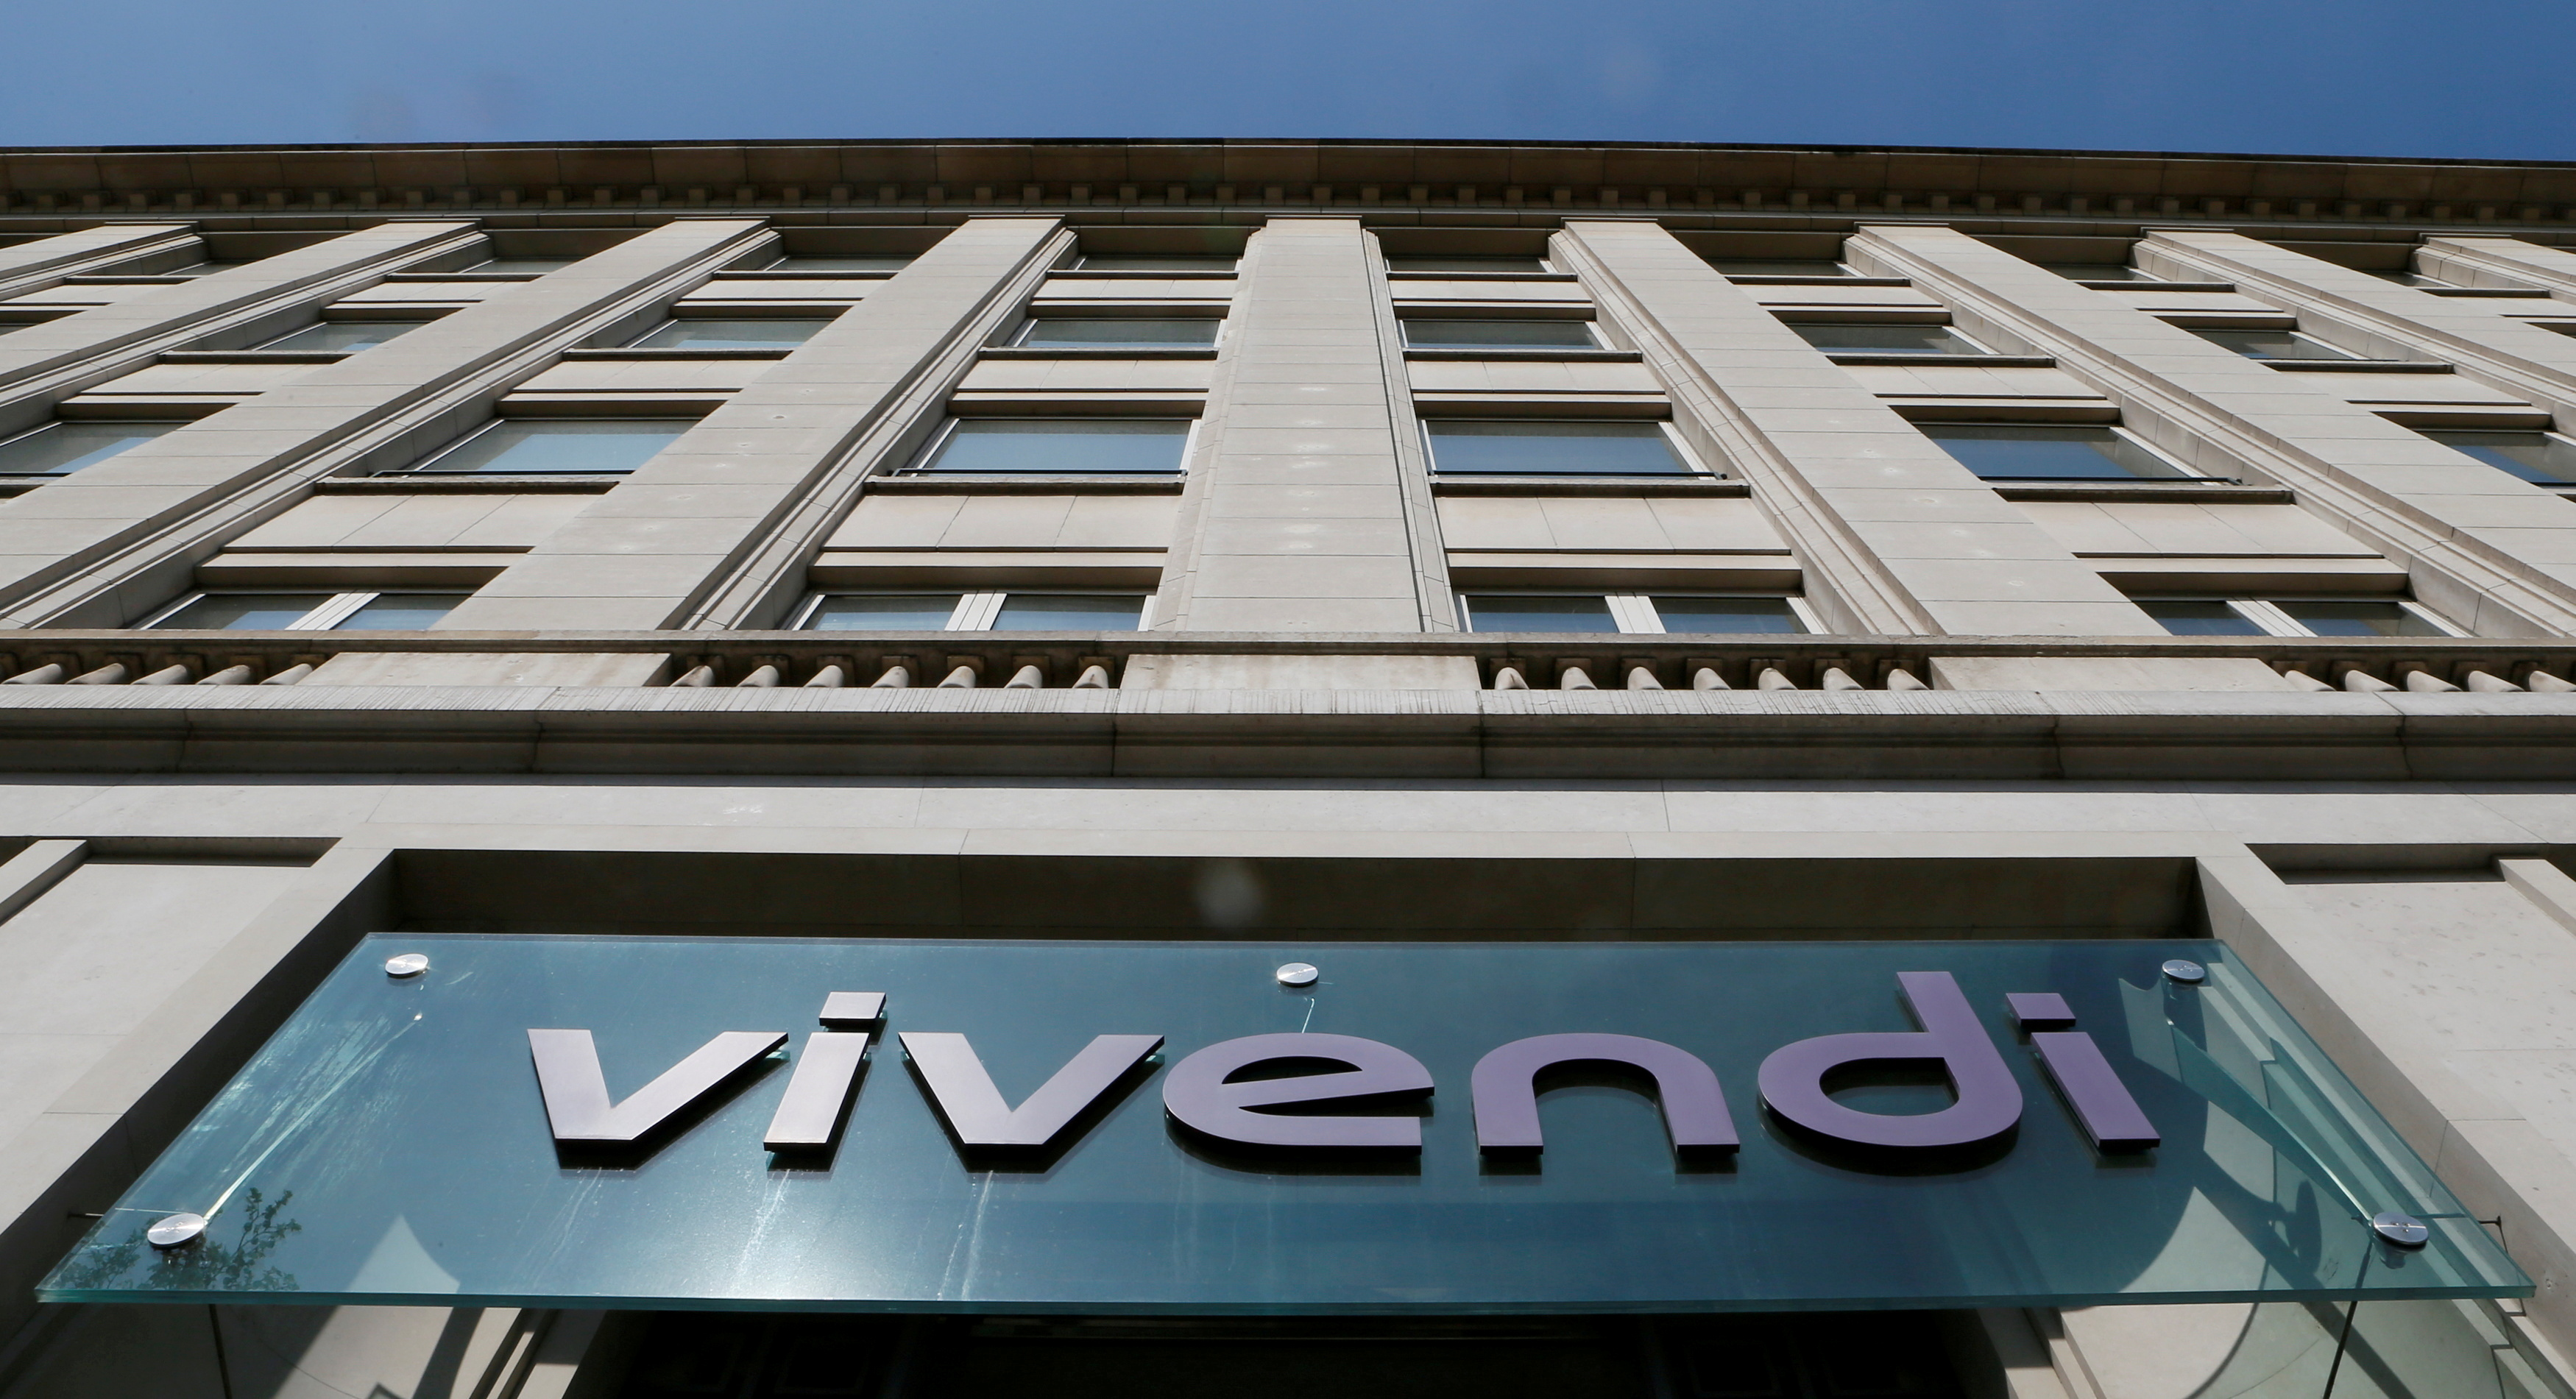 A Vivendi sign is seen at the company's headquarters in Paris, France, April 8, 2015. REUTERS/Gonzalo Fuentes